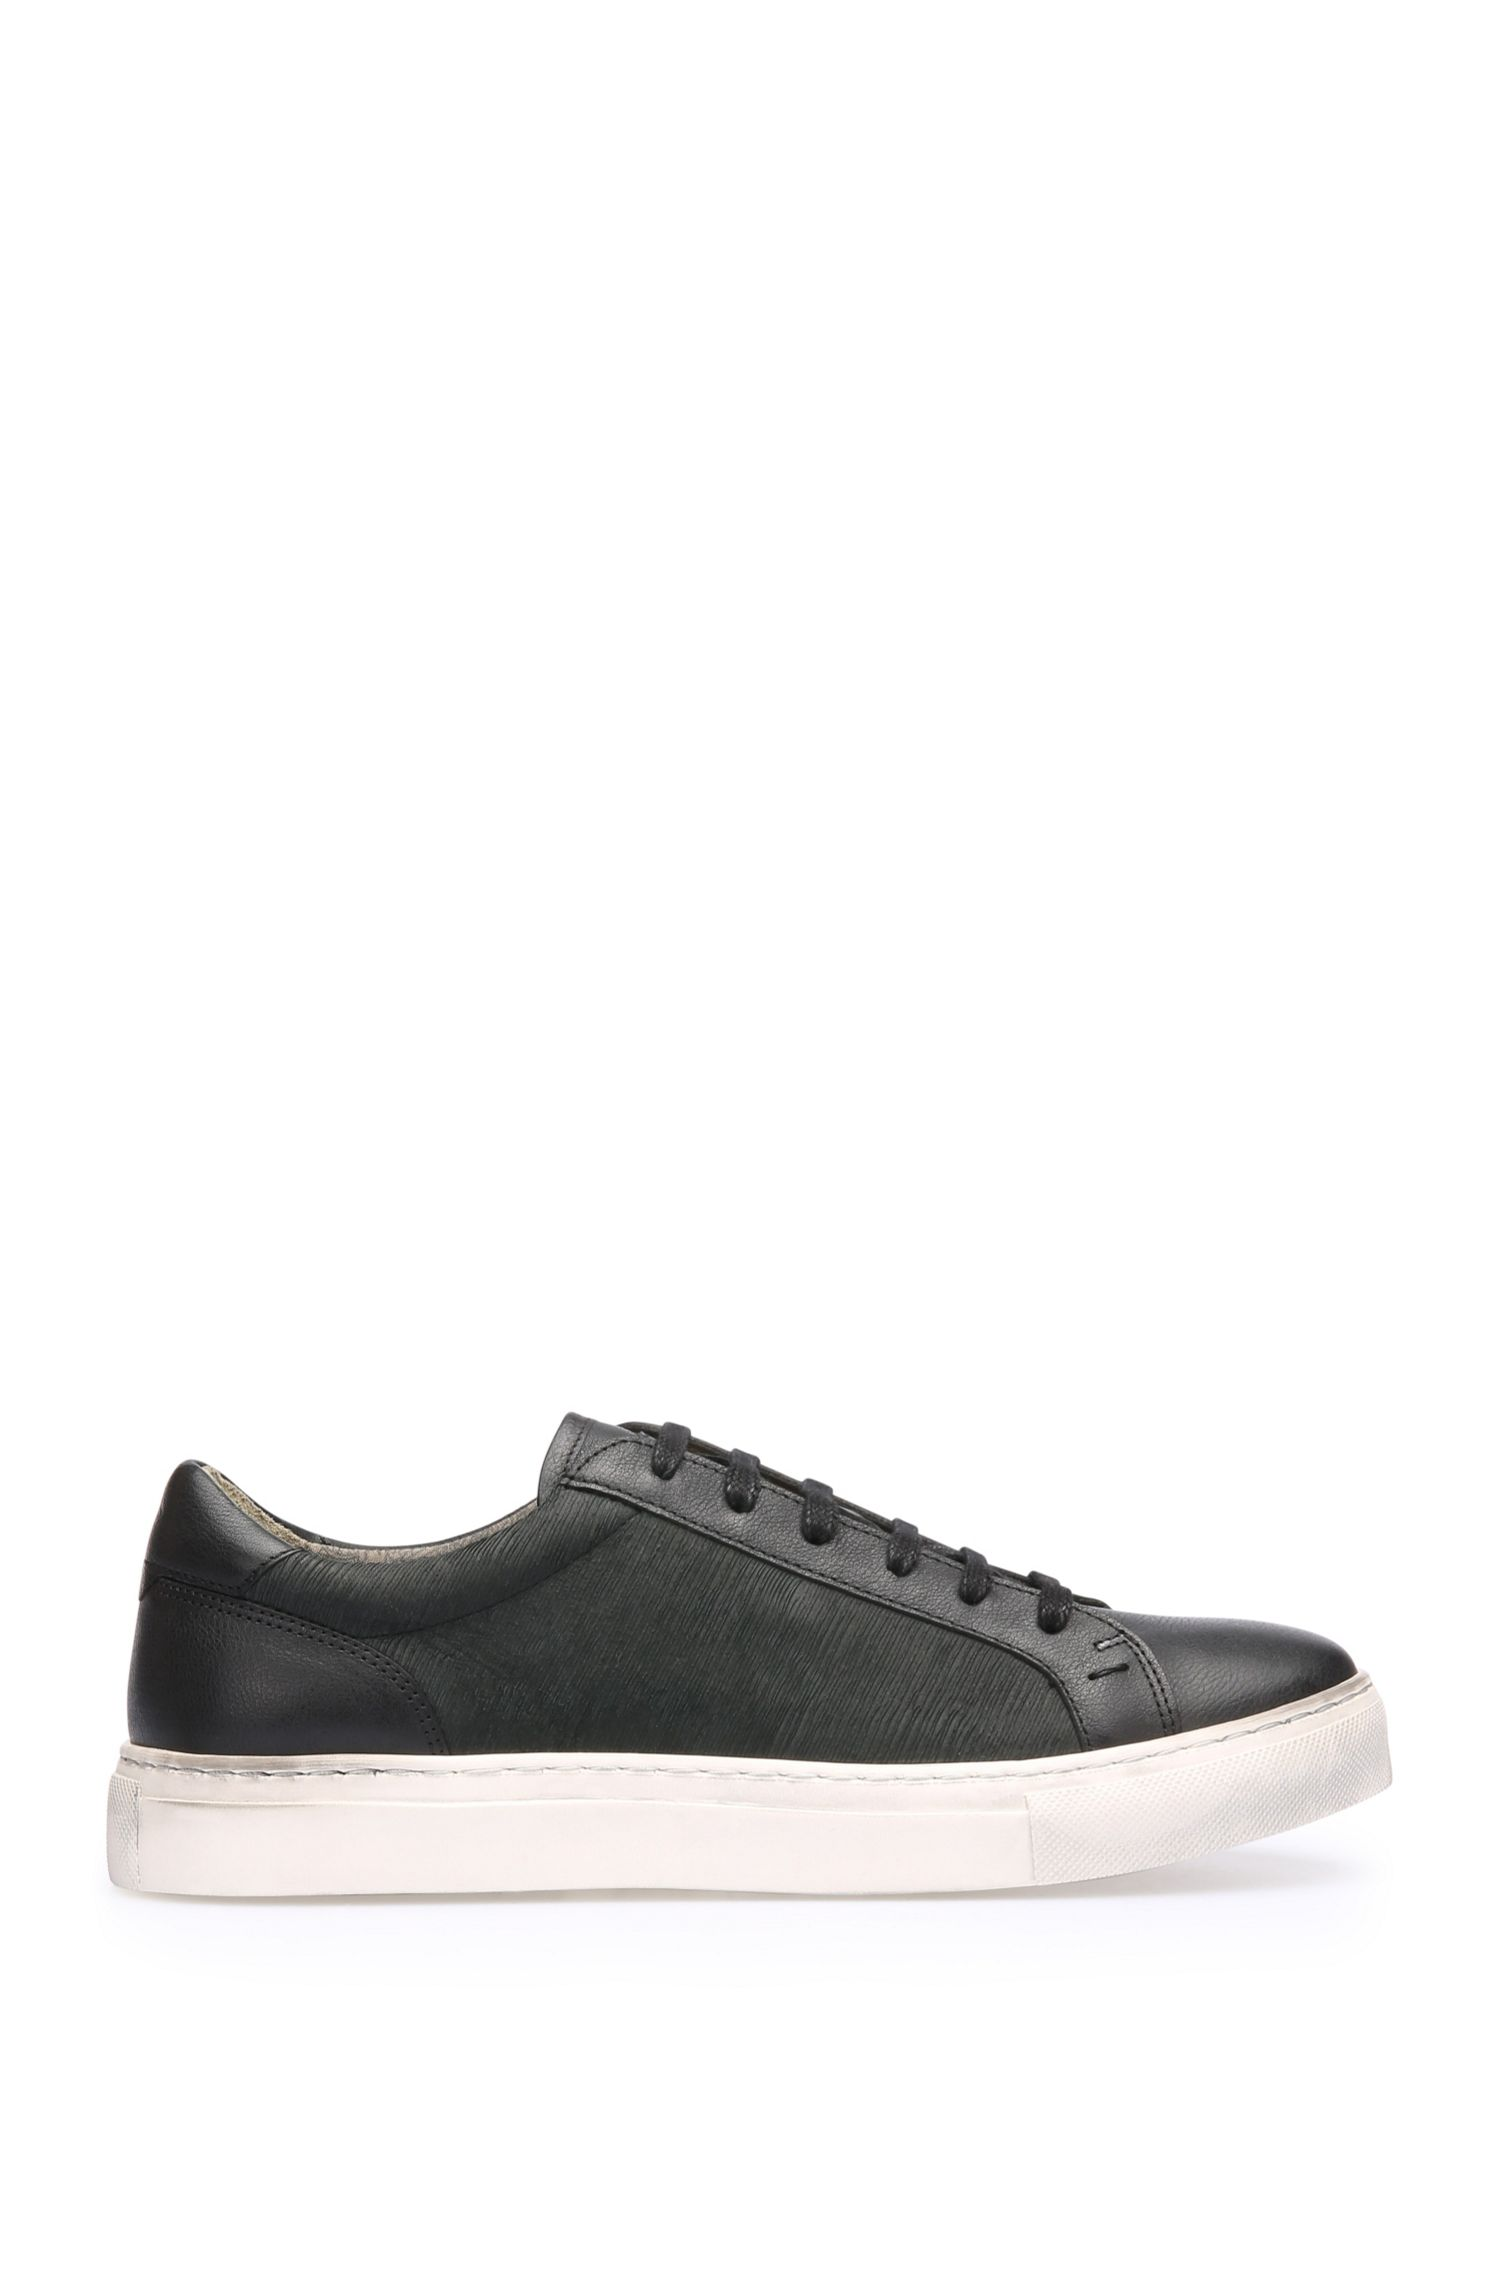 Leather trainers with varying textures: 'Noir_Tenn_sdls'